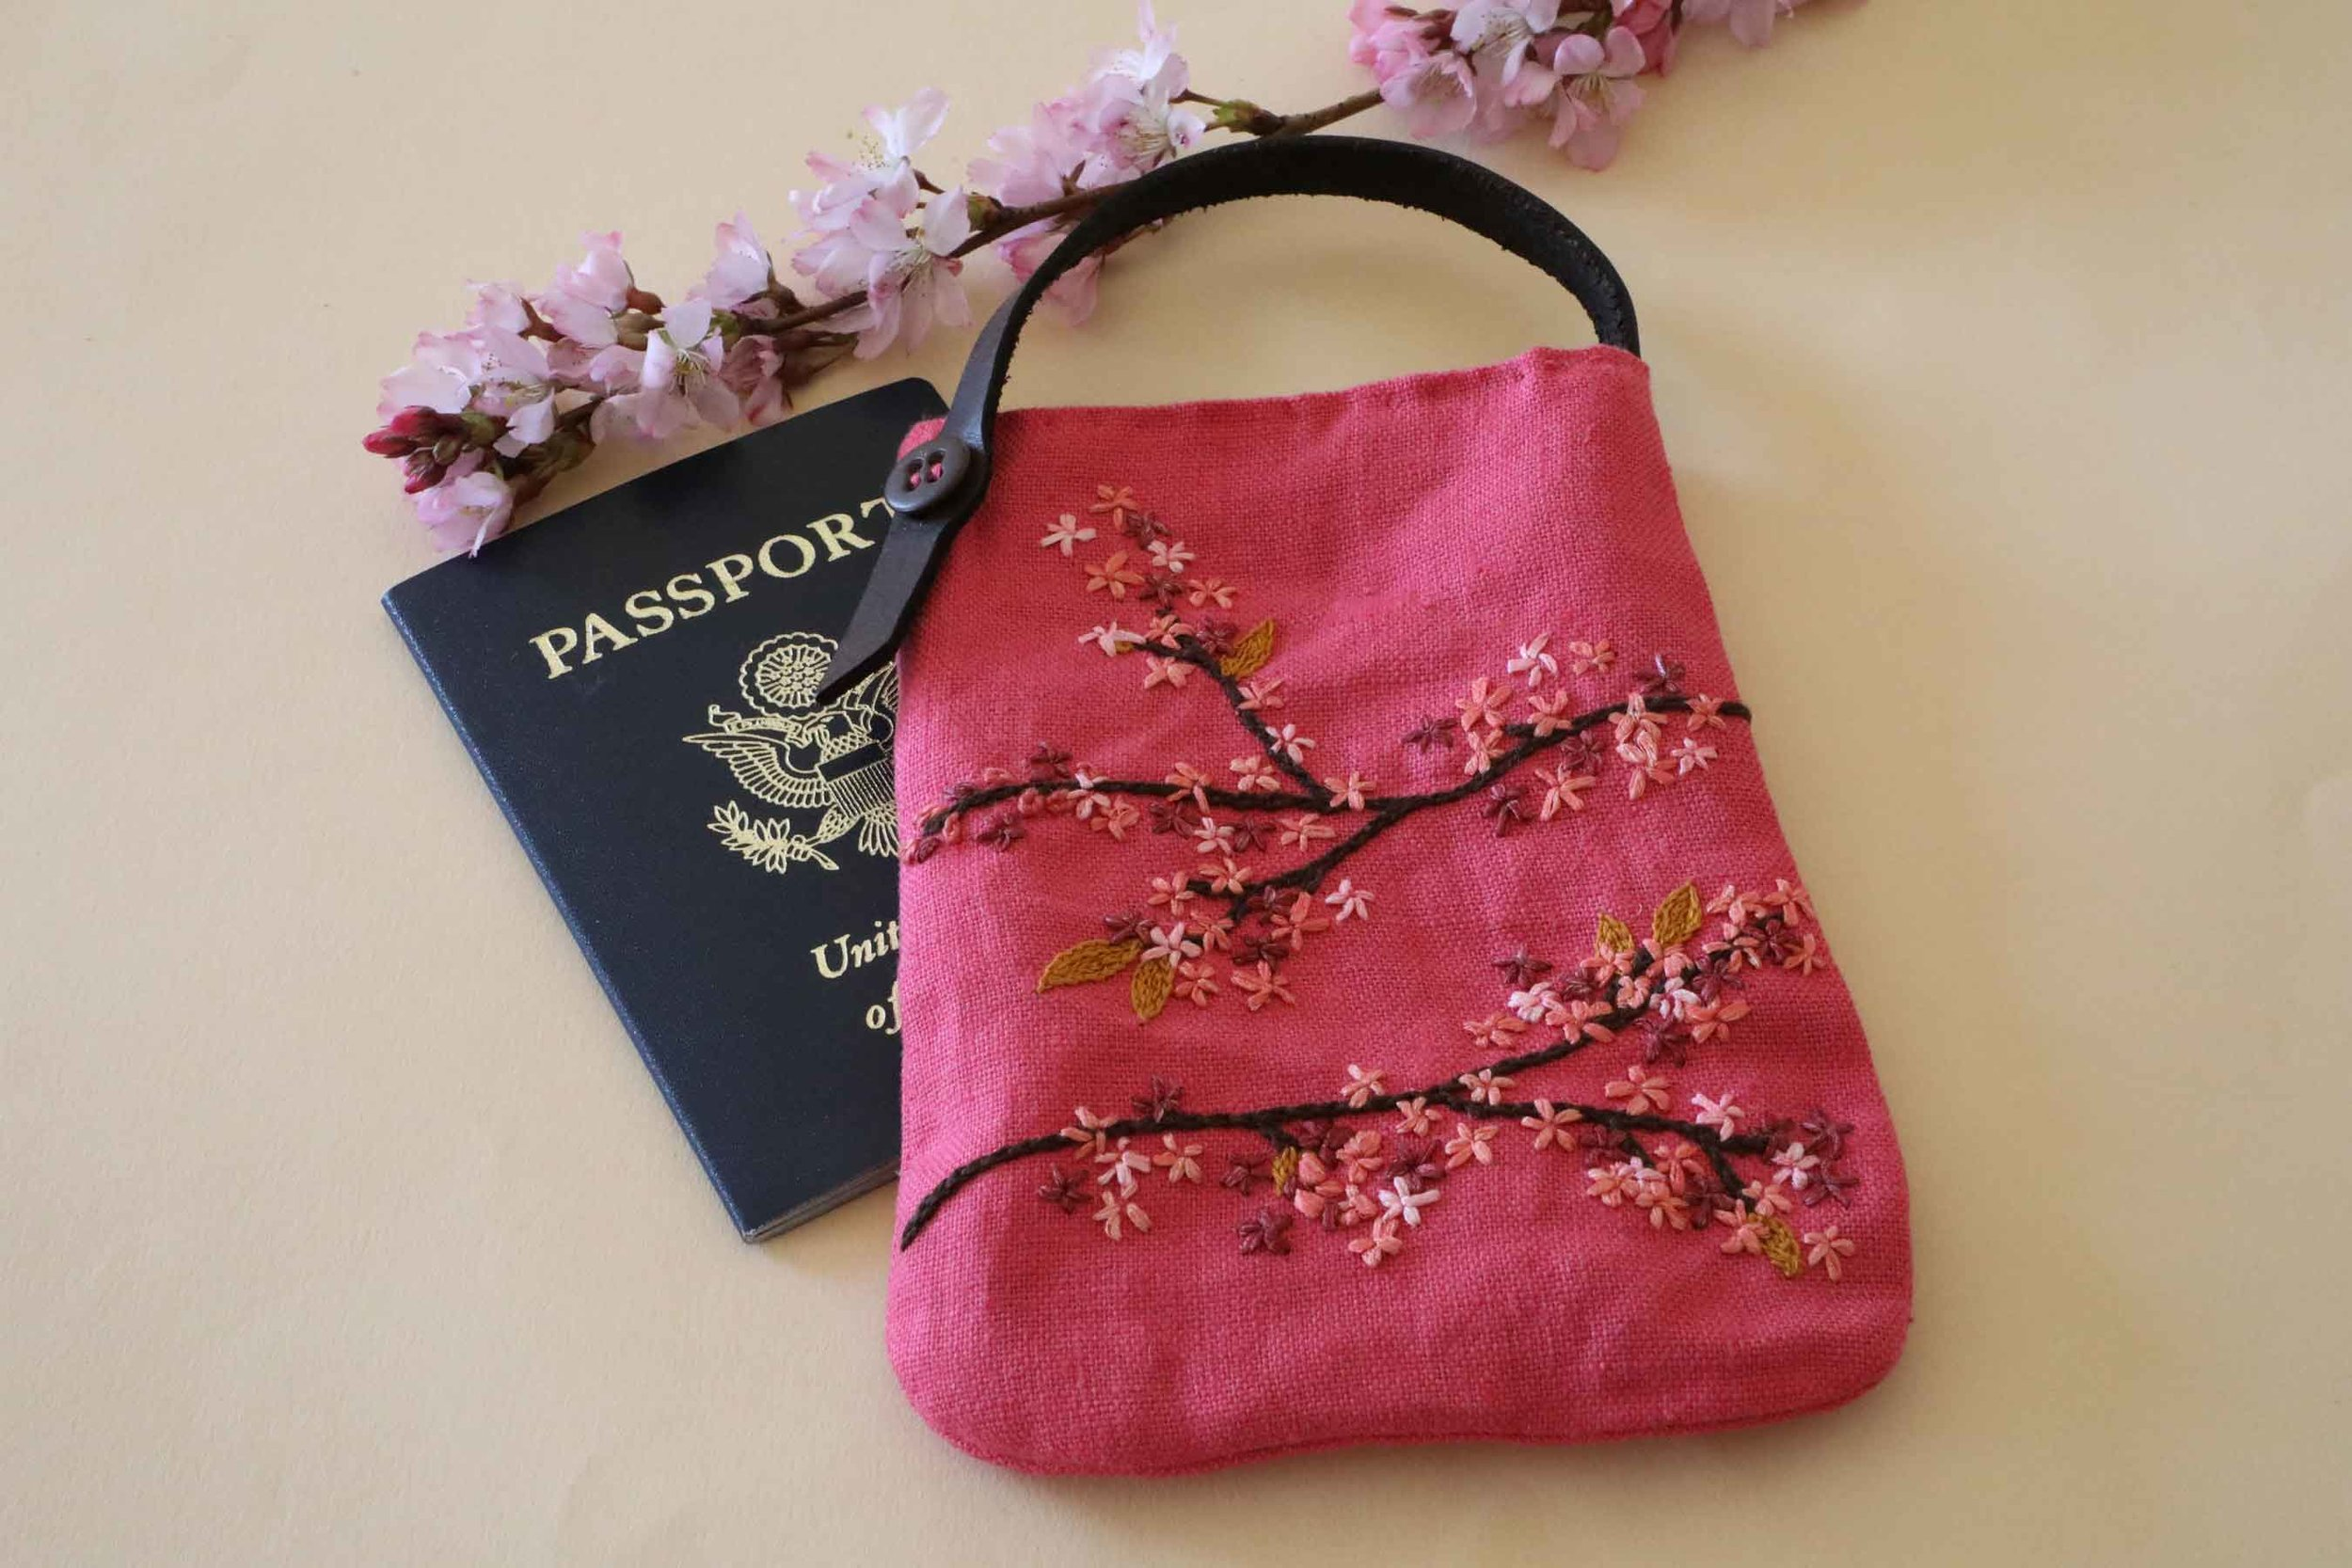 We are headed off to Japan in our dreams and we are taking this little hand-embroidered linen bag. It is the perfect size for our passport and a lipstick. Pink, of course.